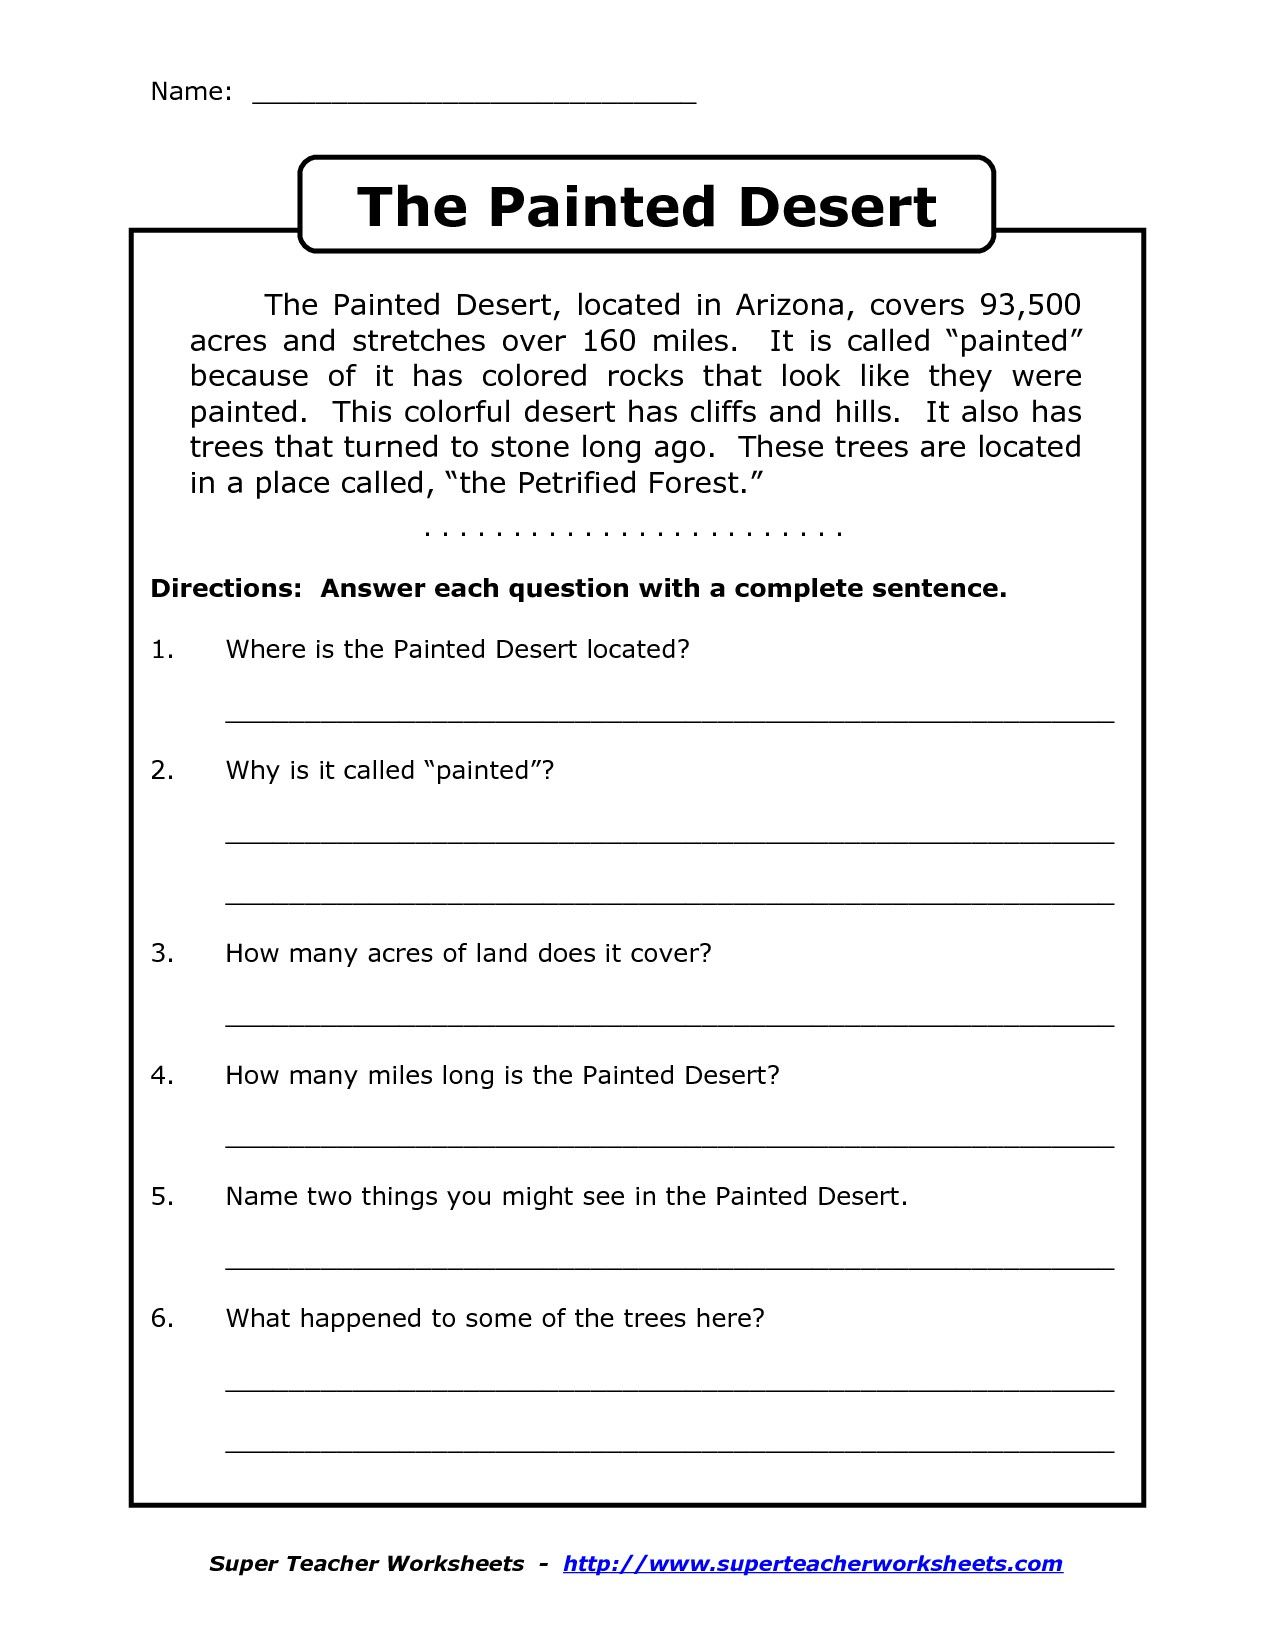 Worksheets 3rd Grade Comprehension Worksheets comprehension worksheet for 1st grade y2p3 the painted desert arizona